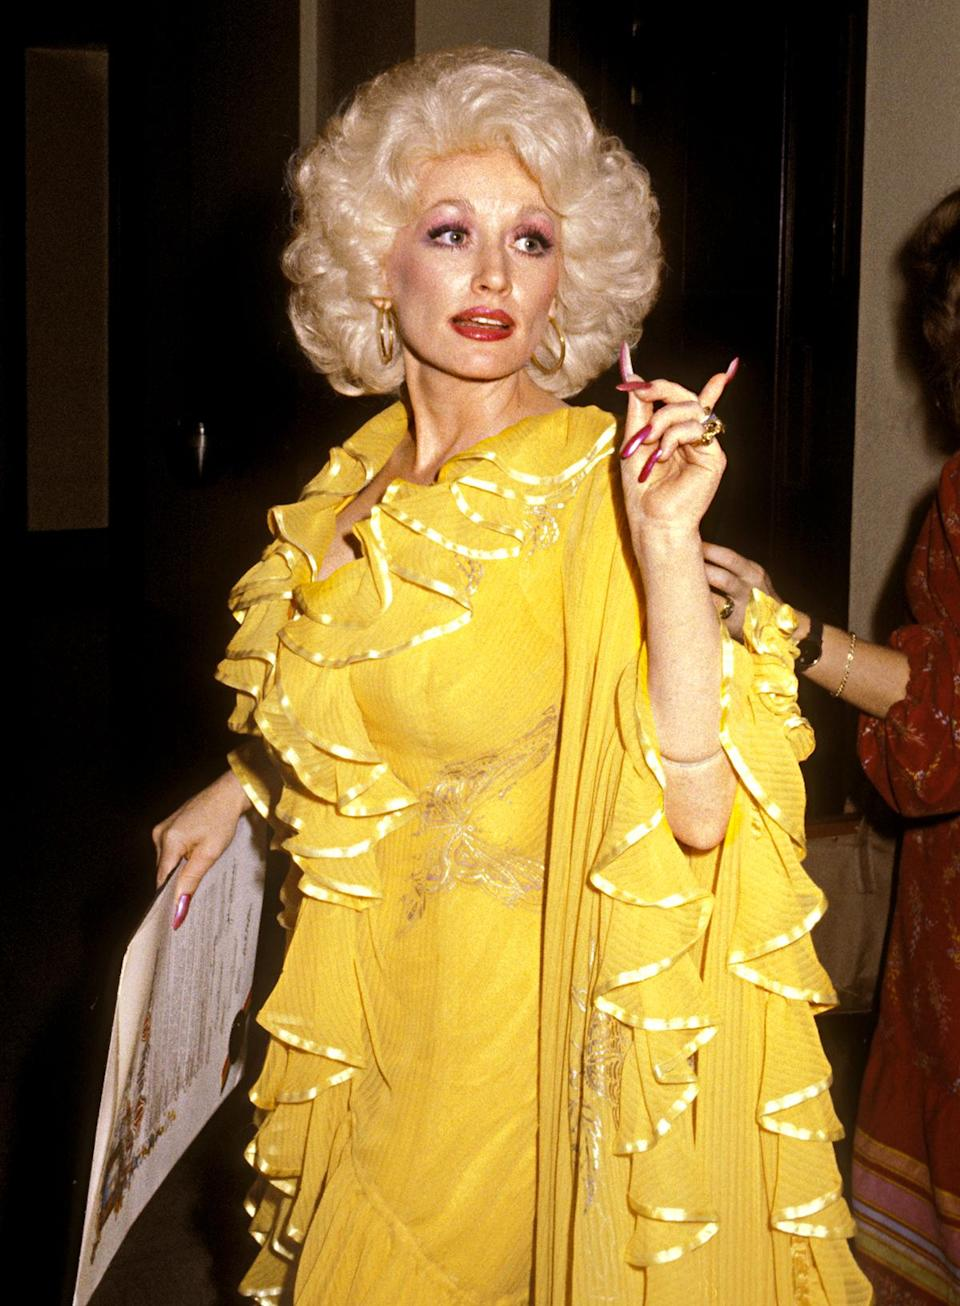 """<p>Parton's longtime costume designer, Steve Summers, describes her mid-'70s style as """"a butterfly look."""" And this bright yellow outfit from 1979 features subtle butterfly motifs throughout. </p>"""